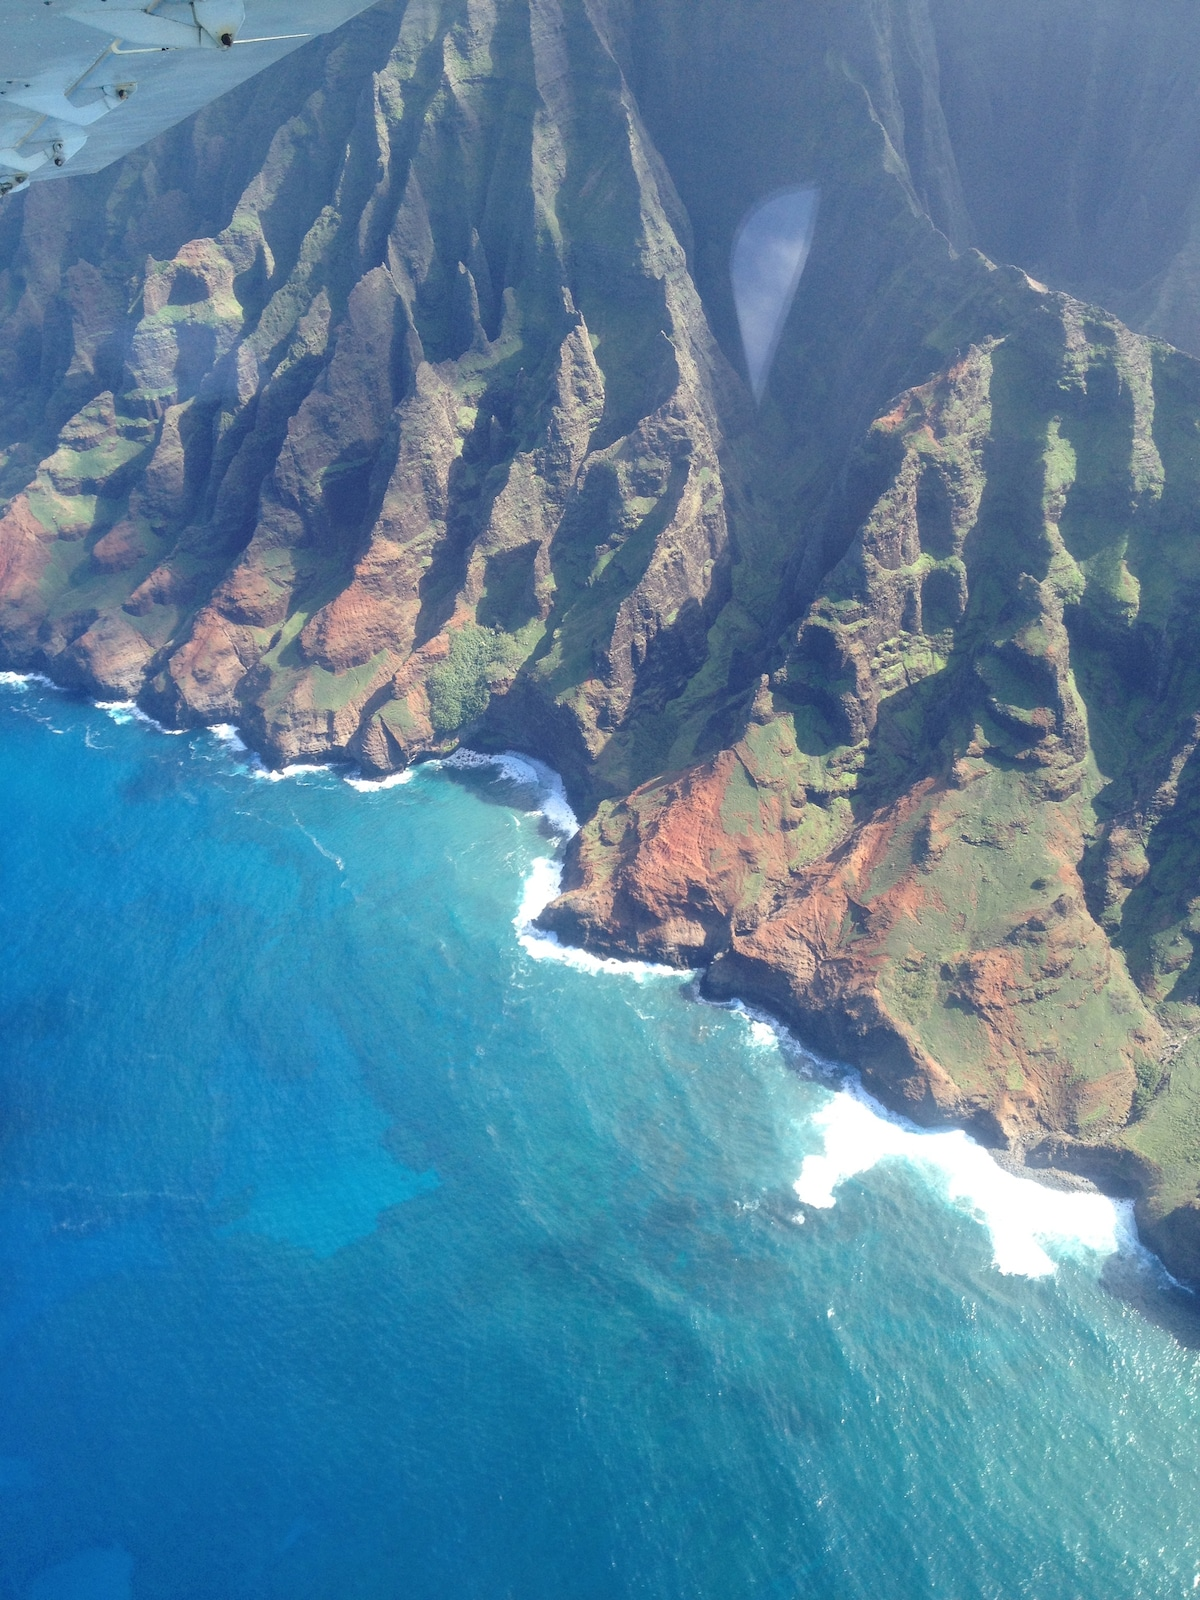 Theses magnificent Na Pali Cliffs can only be viewed by air or sea.